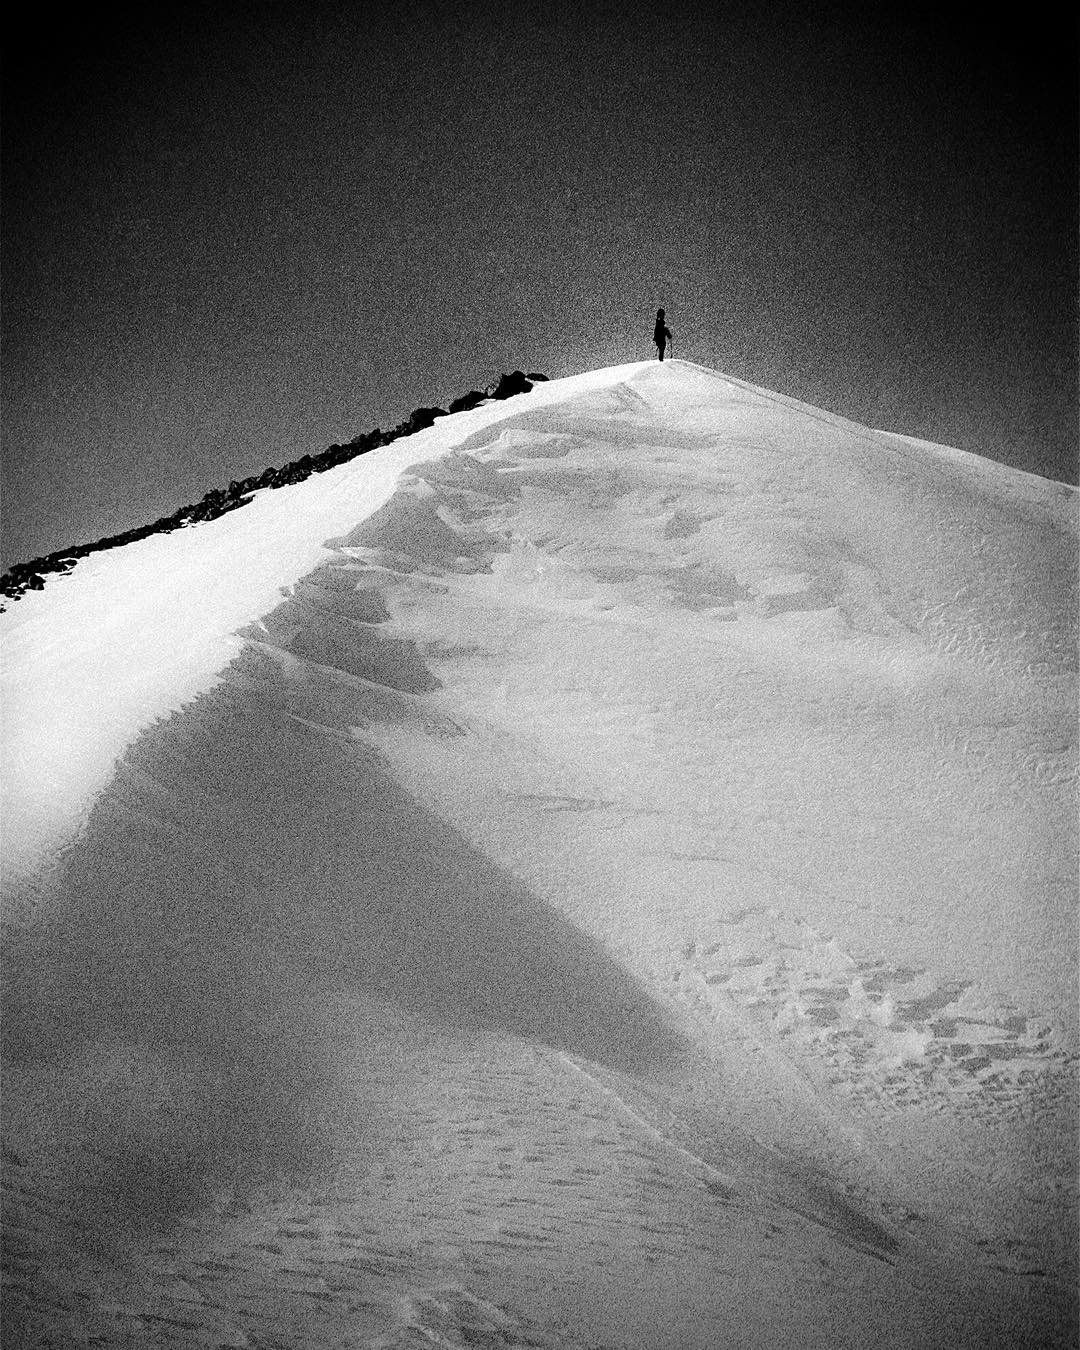 Craig Kelly in the distance, Chris Brunkhart behind the lens.  Gone but never forgotten.  The Ridge by @28f2  #chrisbrunkhart #craigkelly #asymbol #asymbolphotography #copilotseries